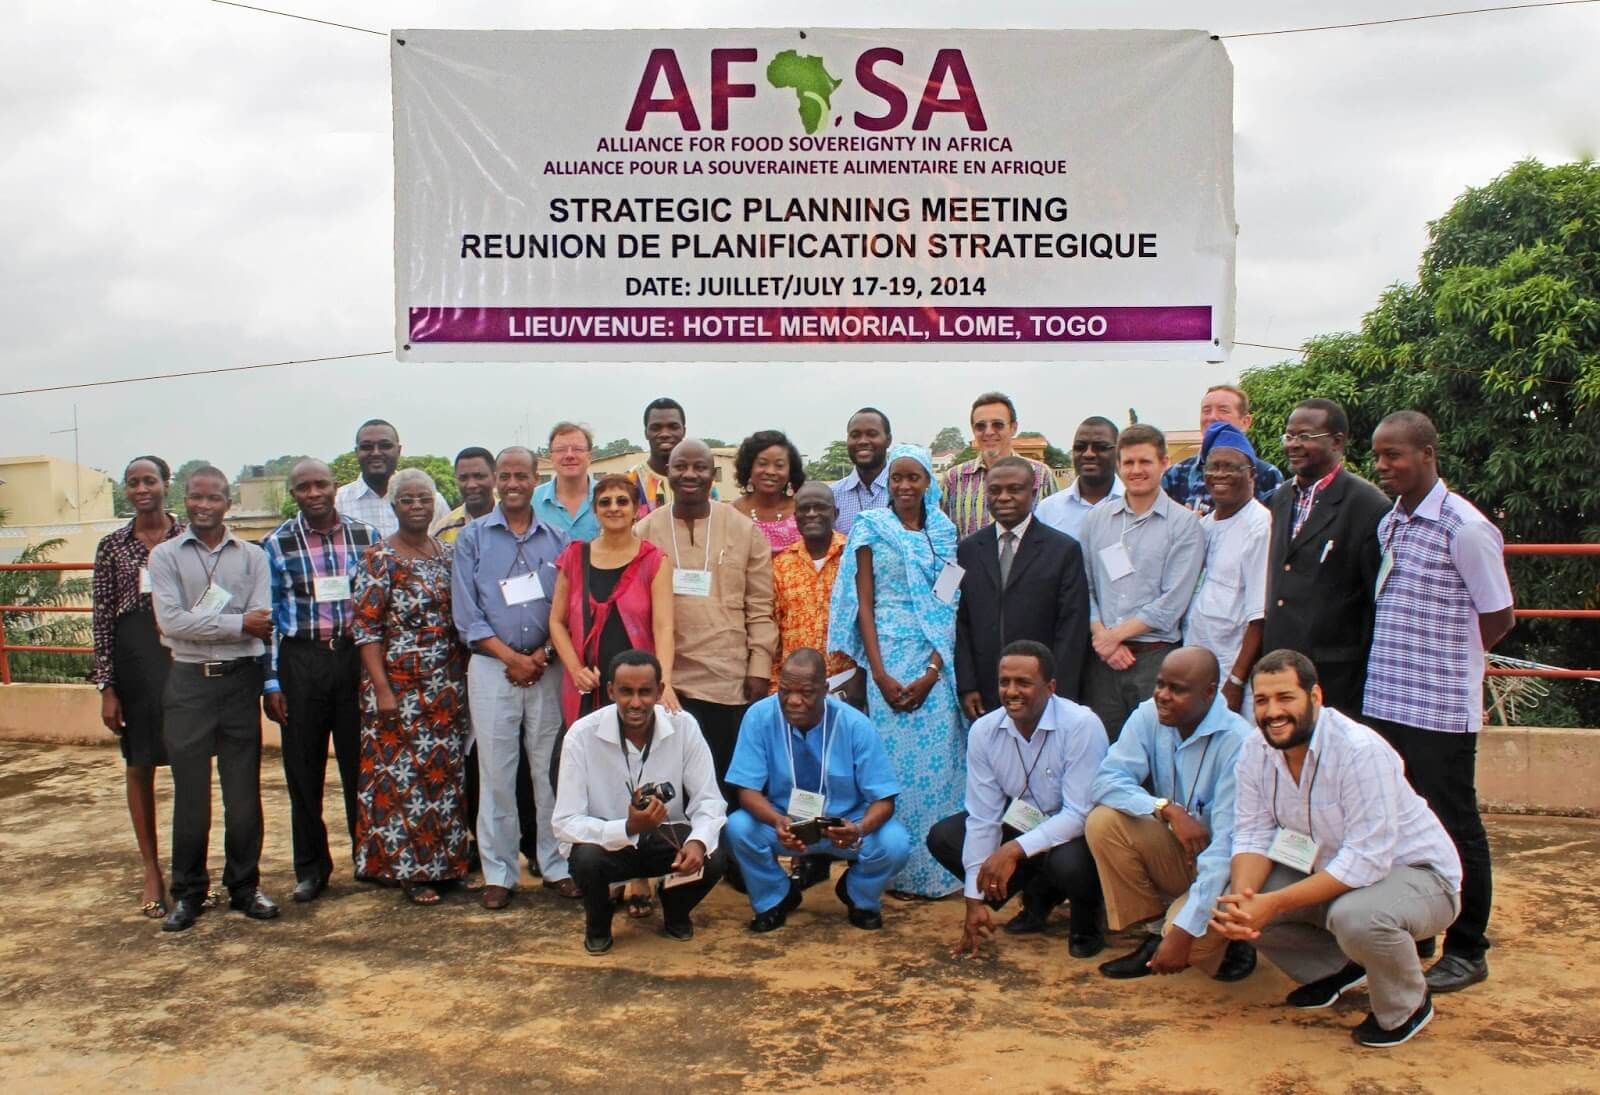 afsa meeting family picture